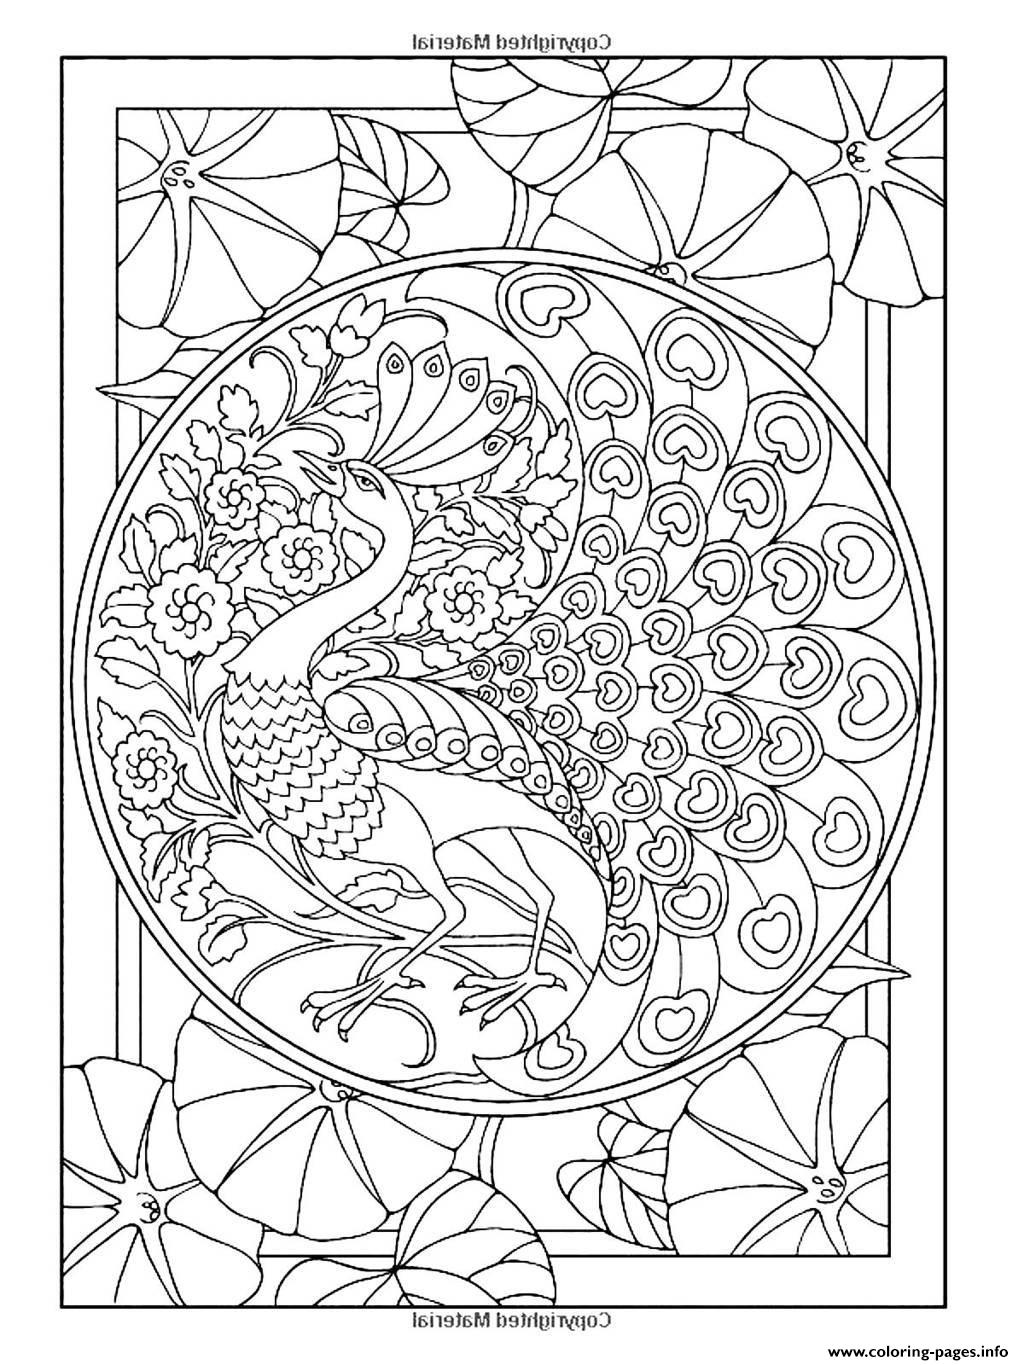 cool coloring pages for adults - cool coloring pages for adults peacock coloring home